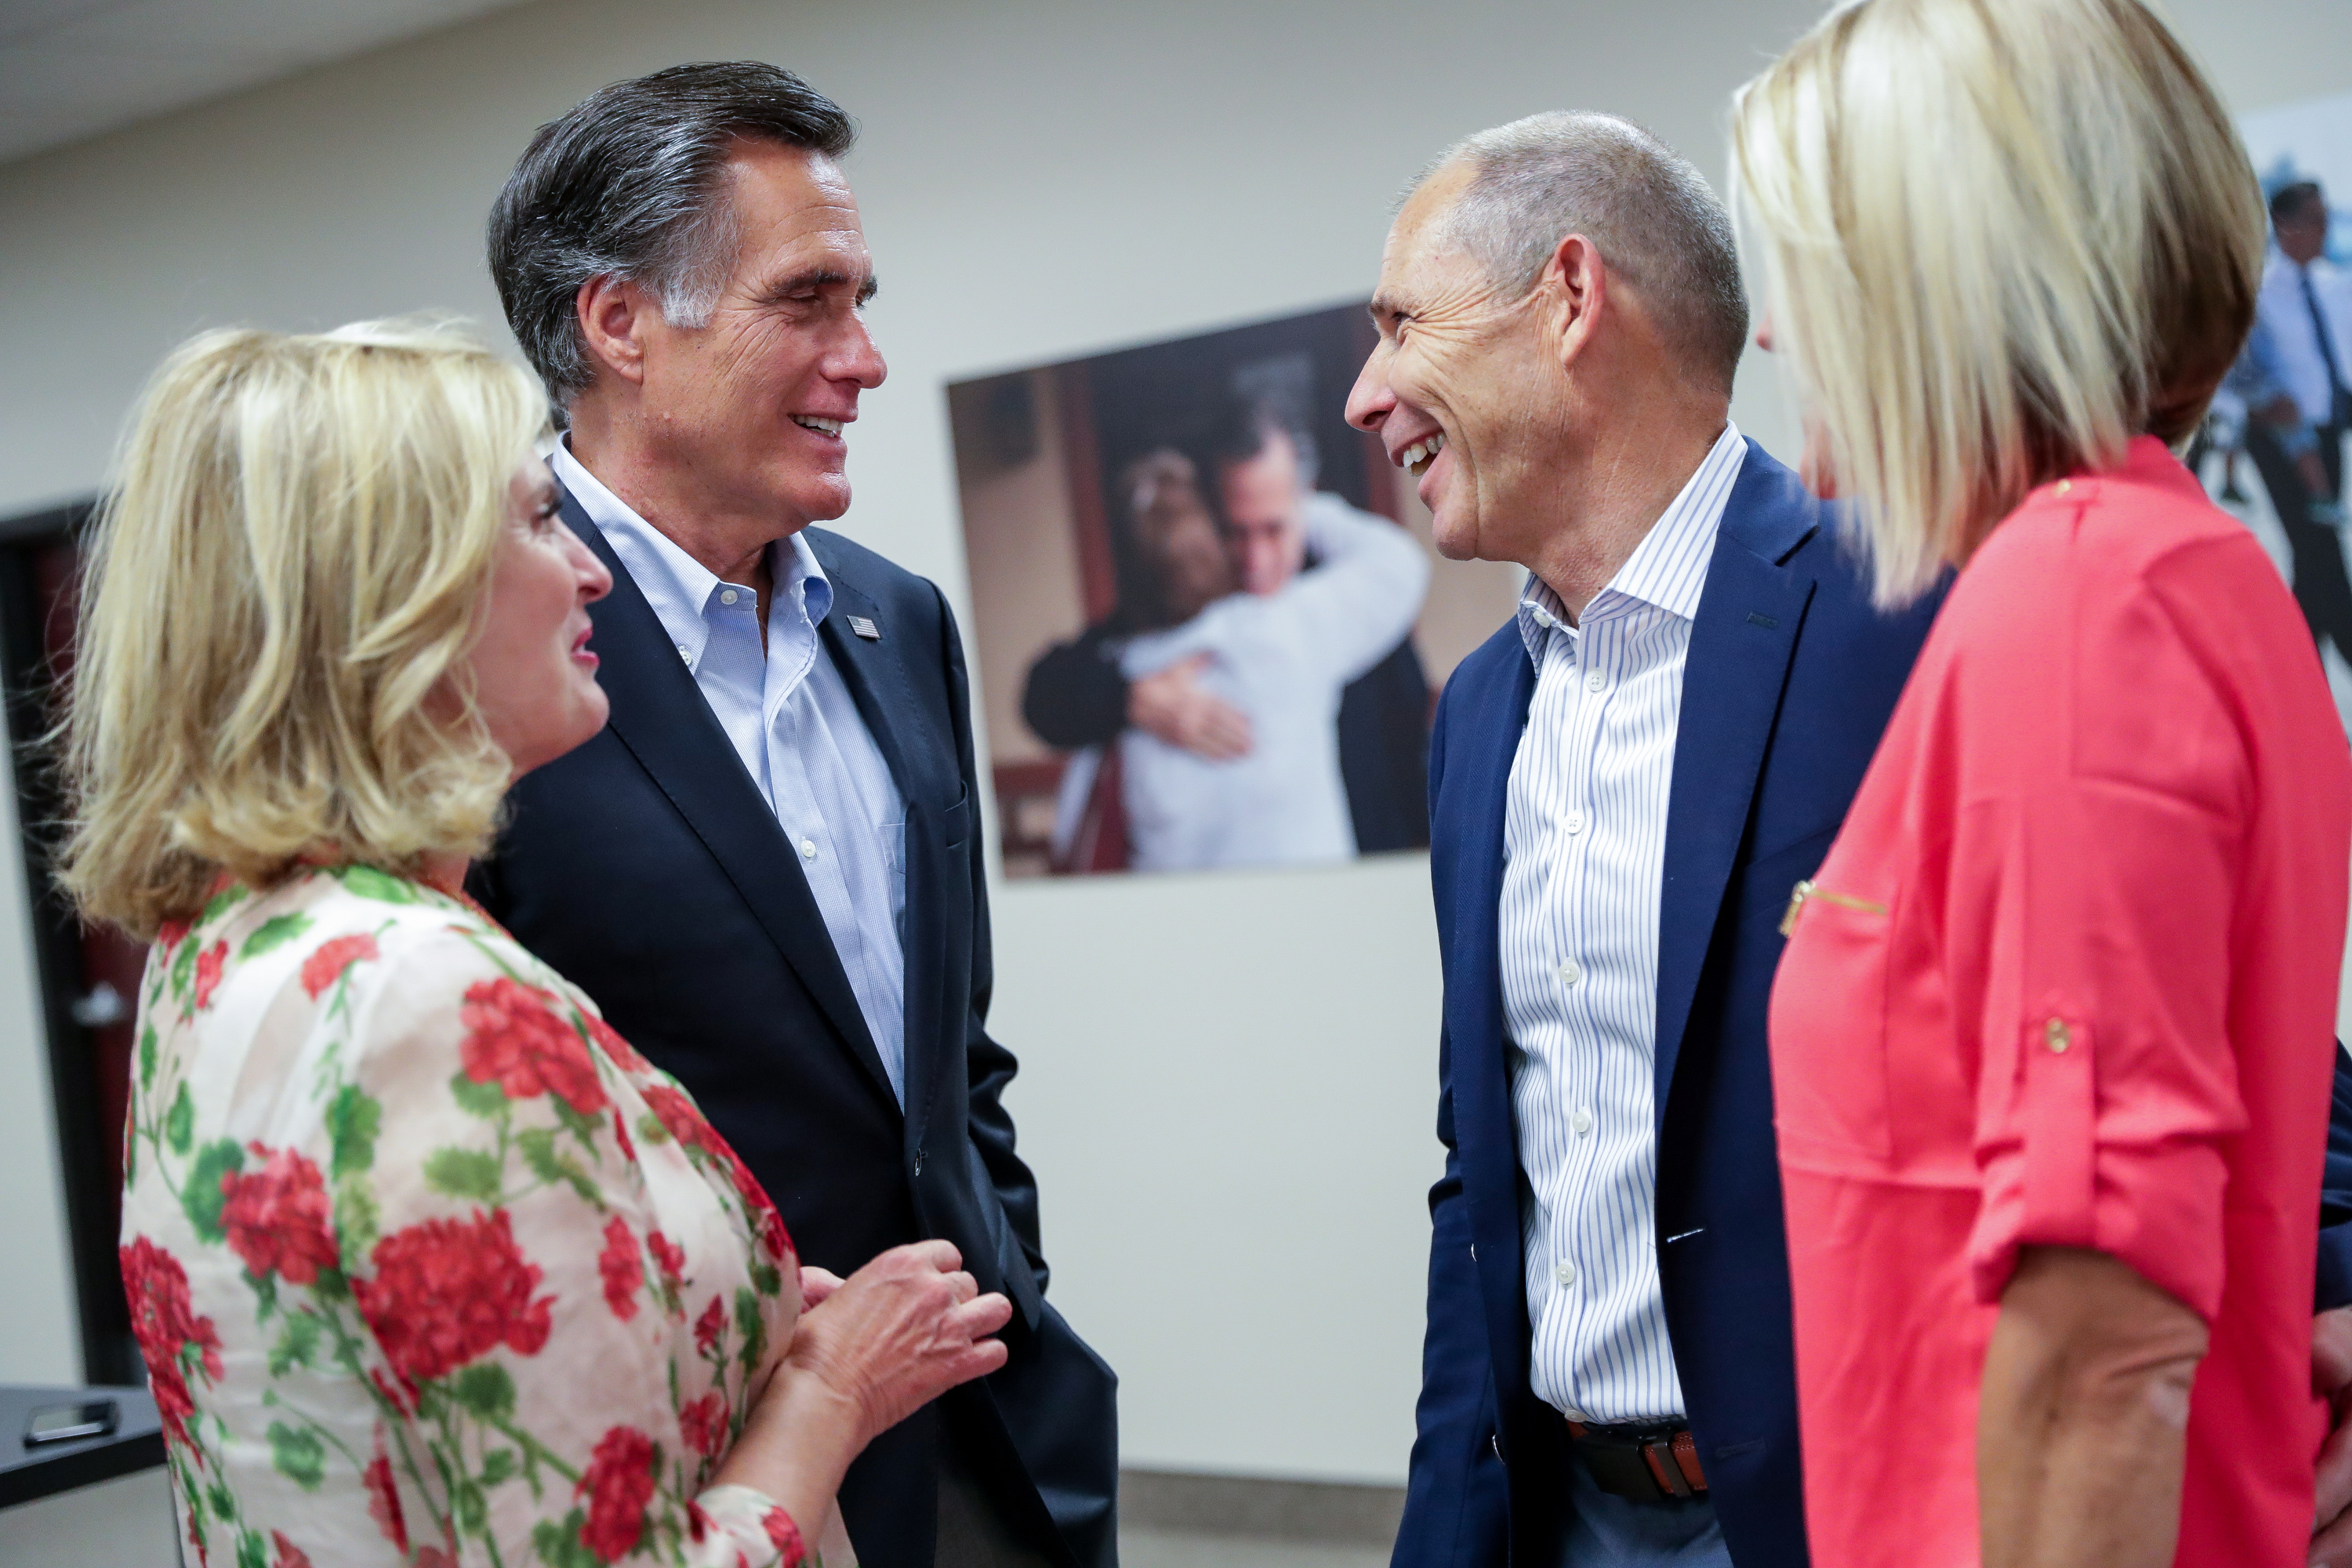 Sen. Mitt Romney and Rep. John Curtis chat after claiming victory in their primary elections.